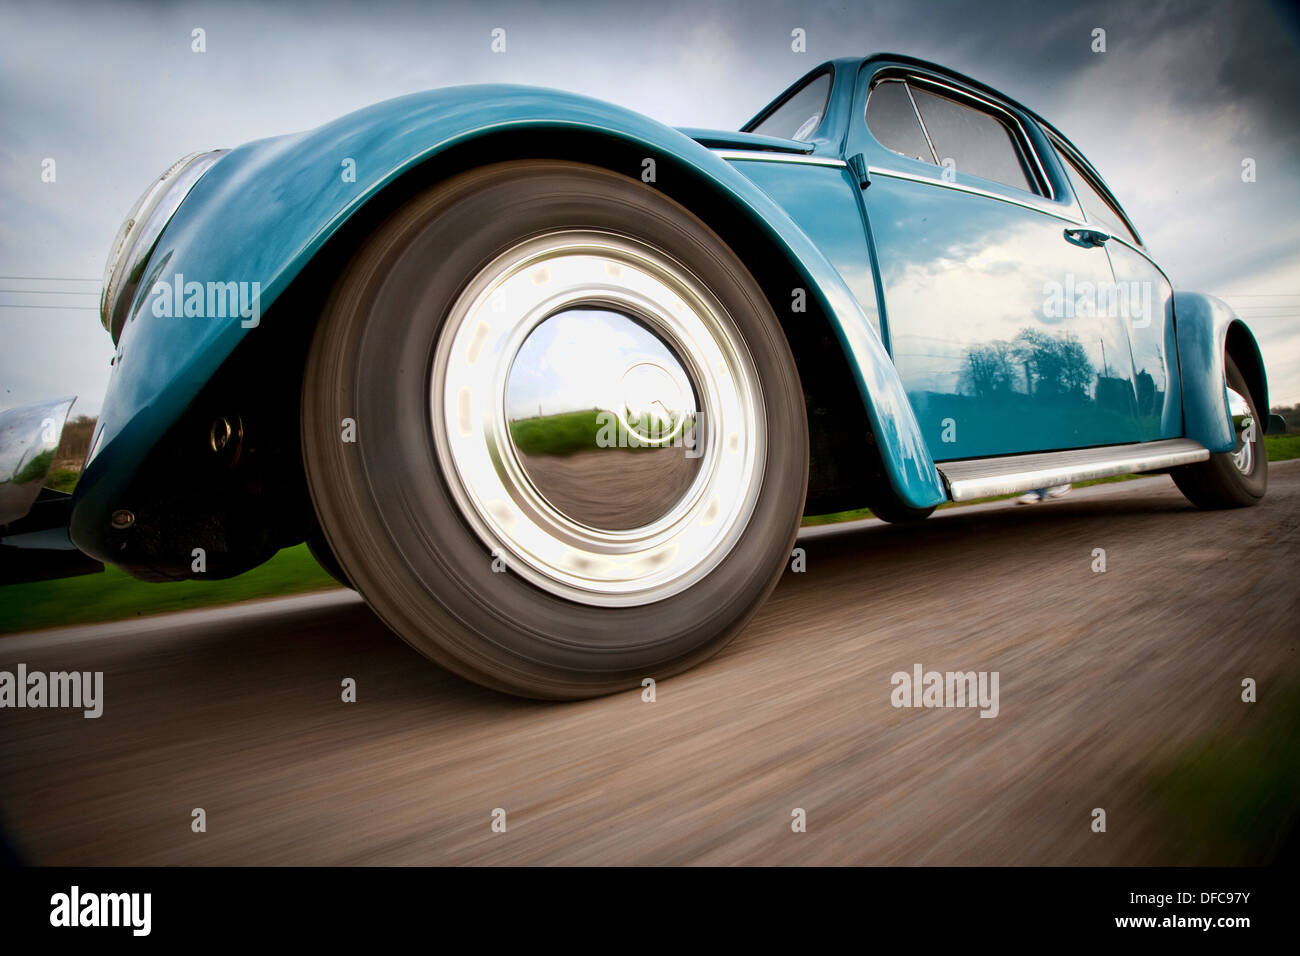 A classic VW Beetle in action - Stock Image